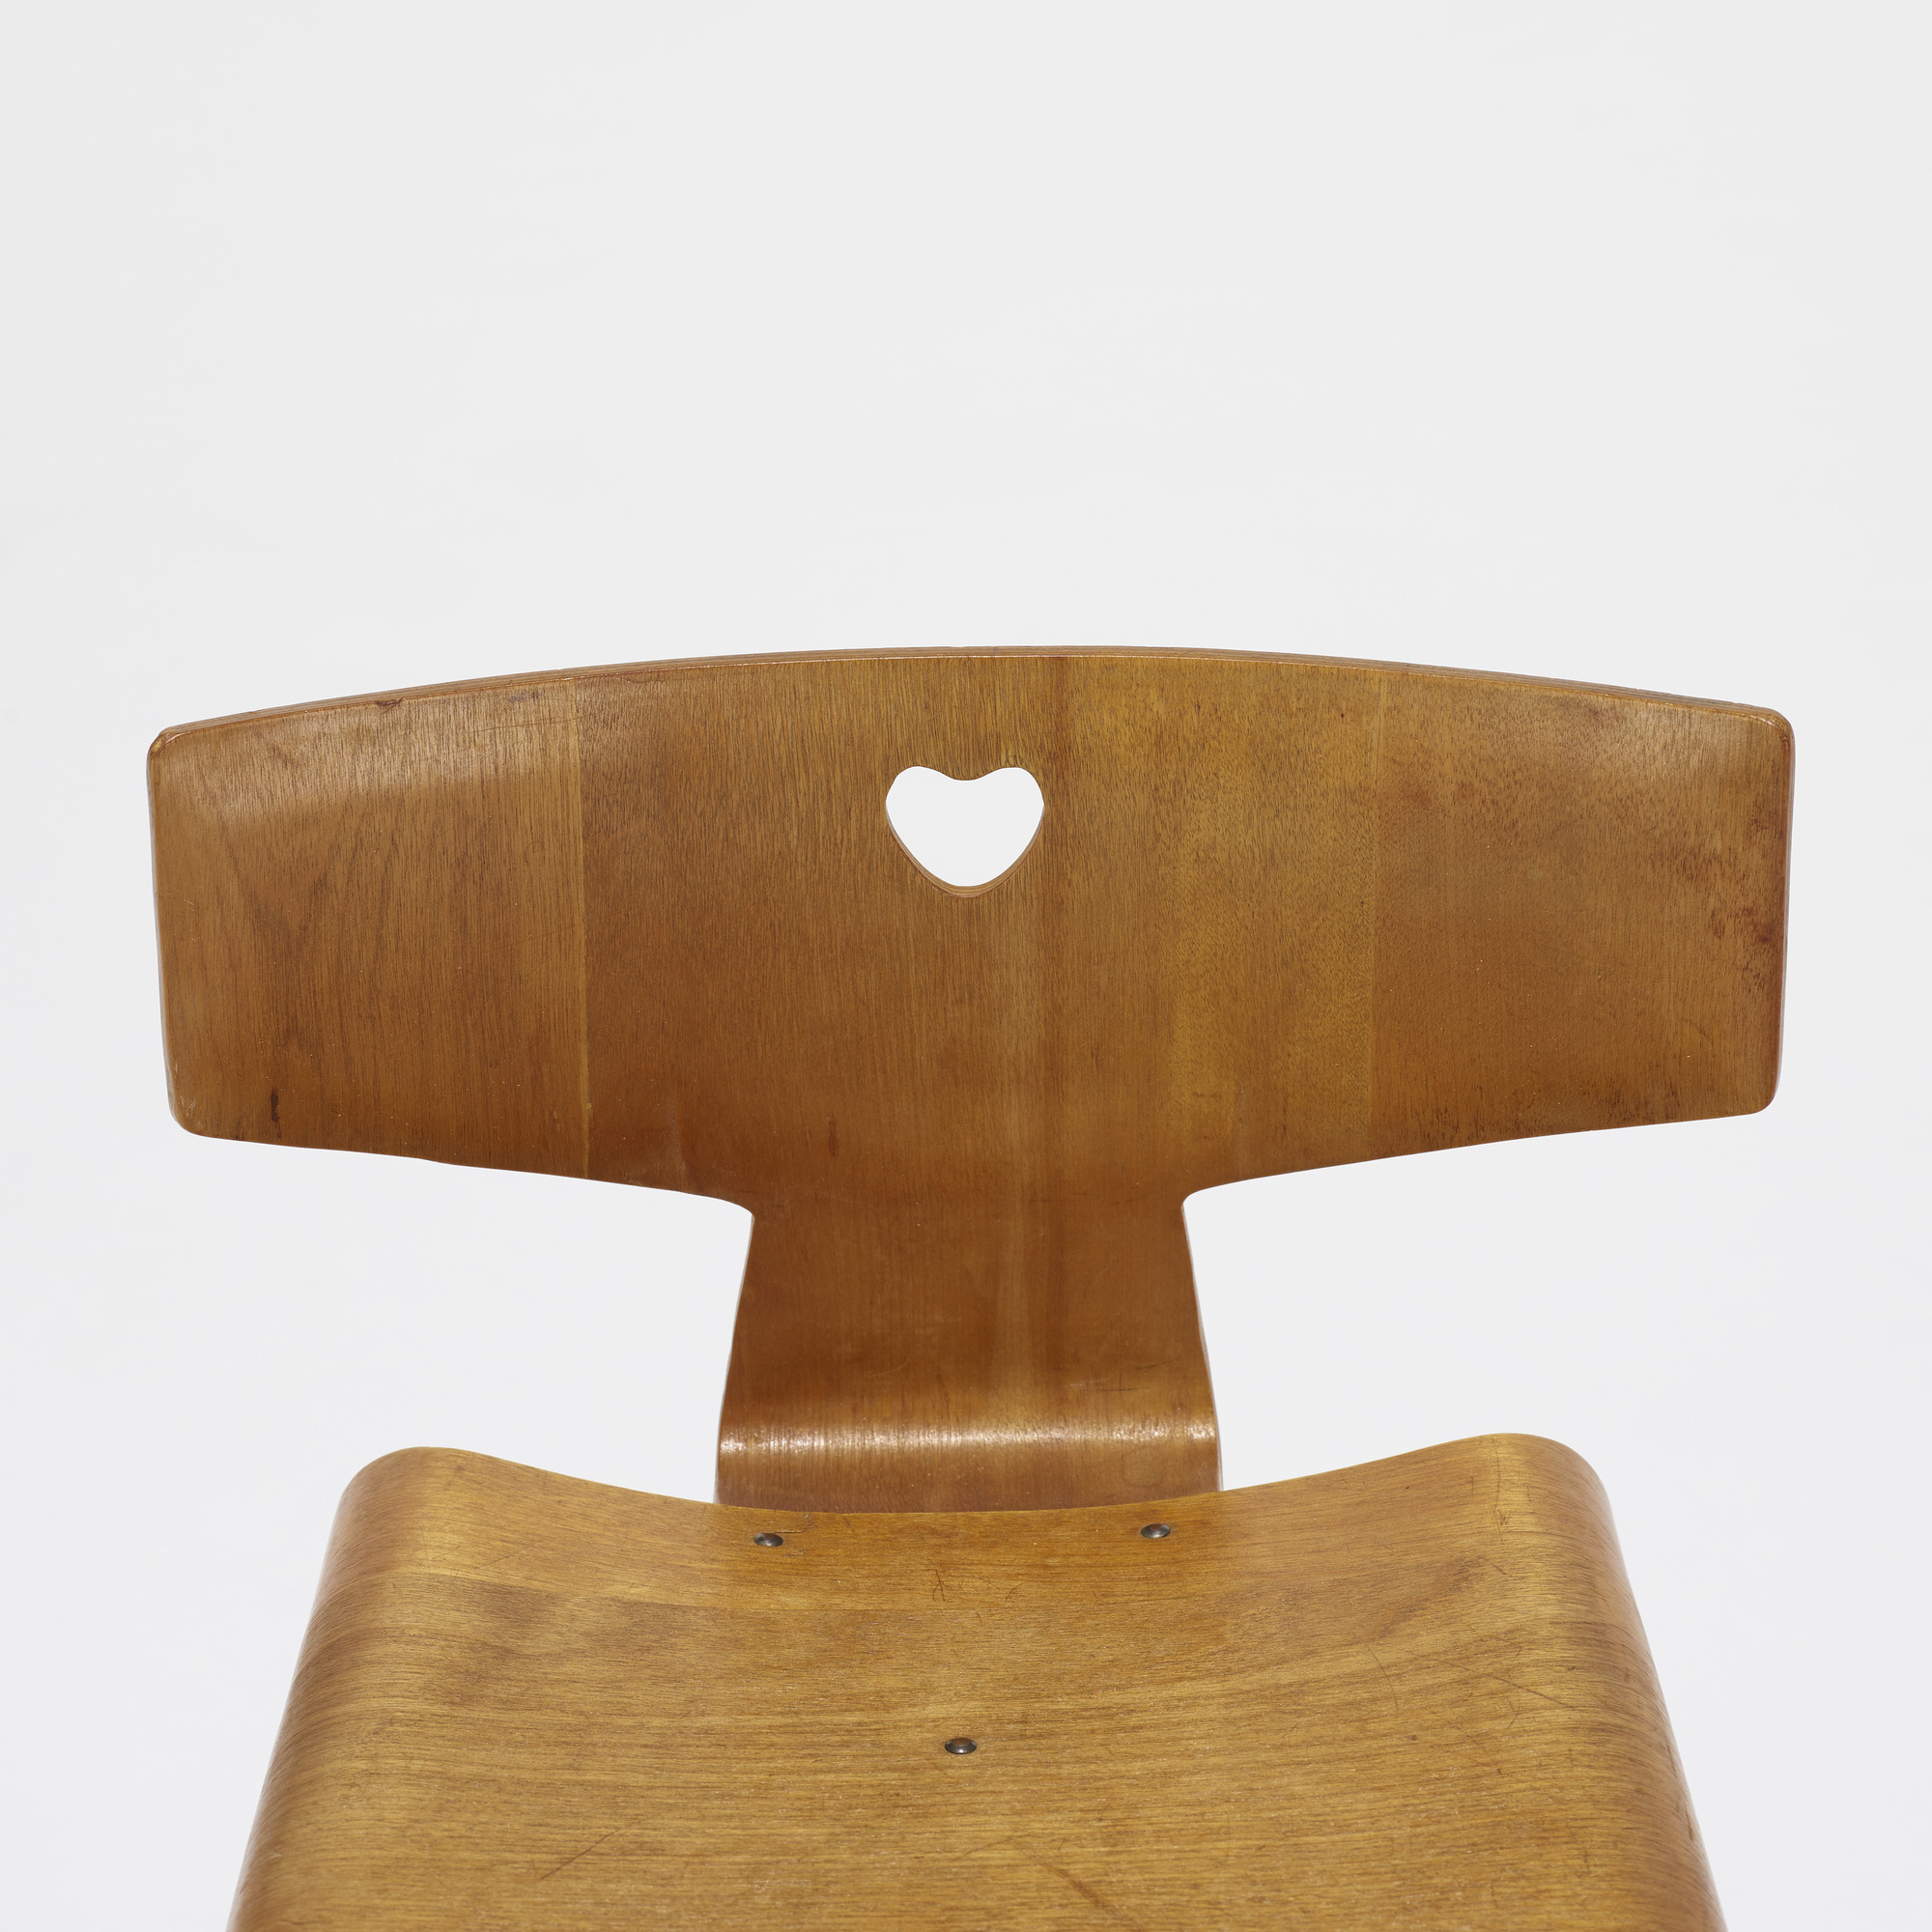 138: Charles and Ray Eames / child's chair (2 of 2)